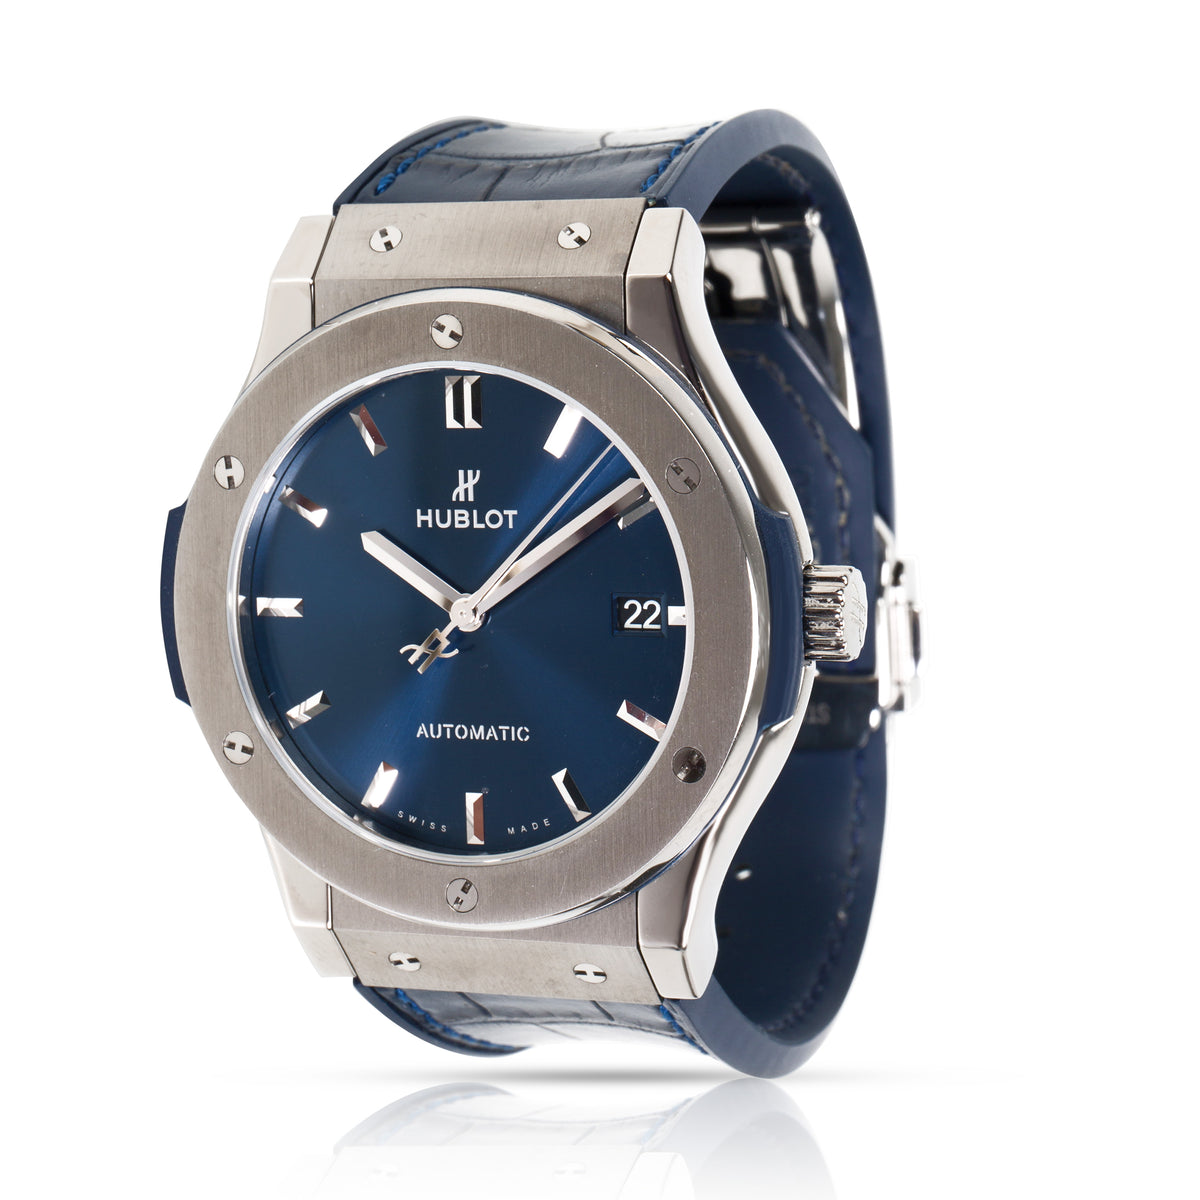 Hublot Classic Fusion 511.NX.7170.LR Men's Watch in  Titanium